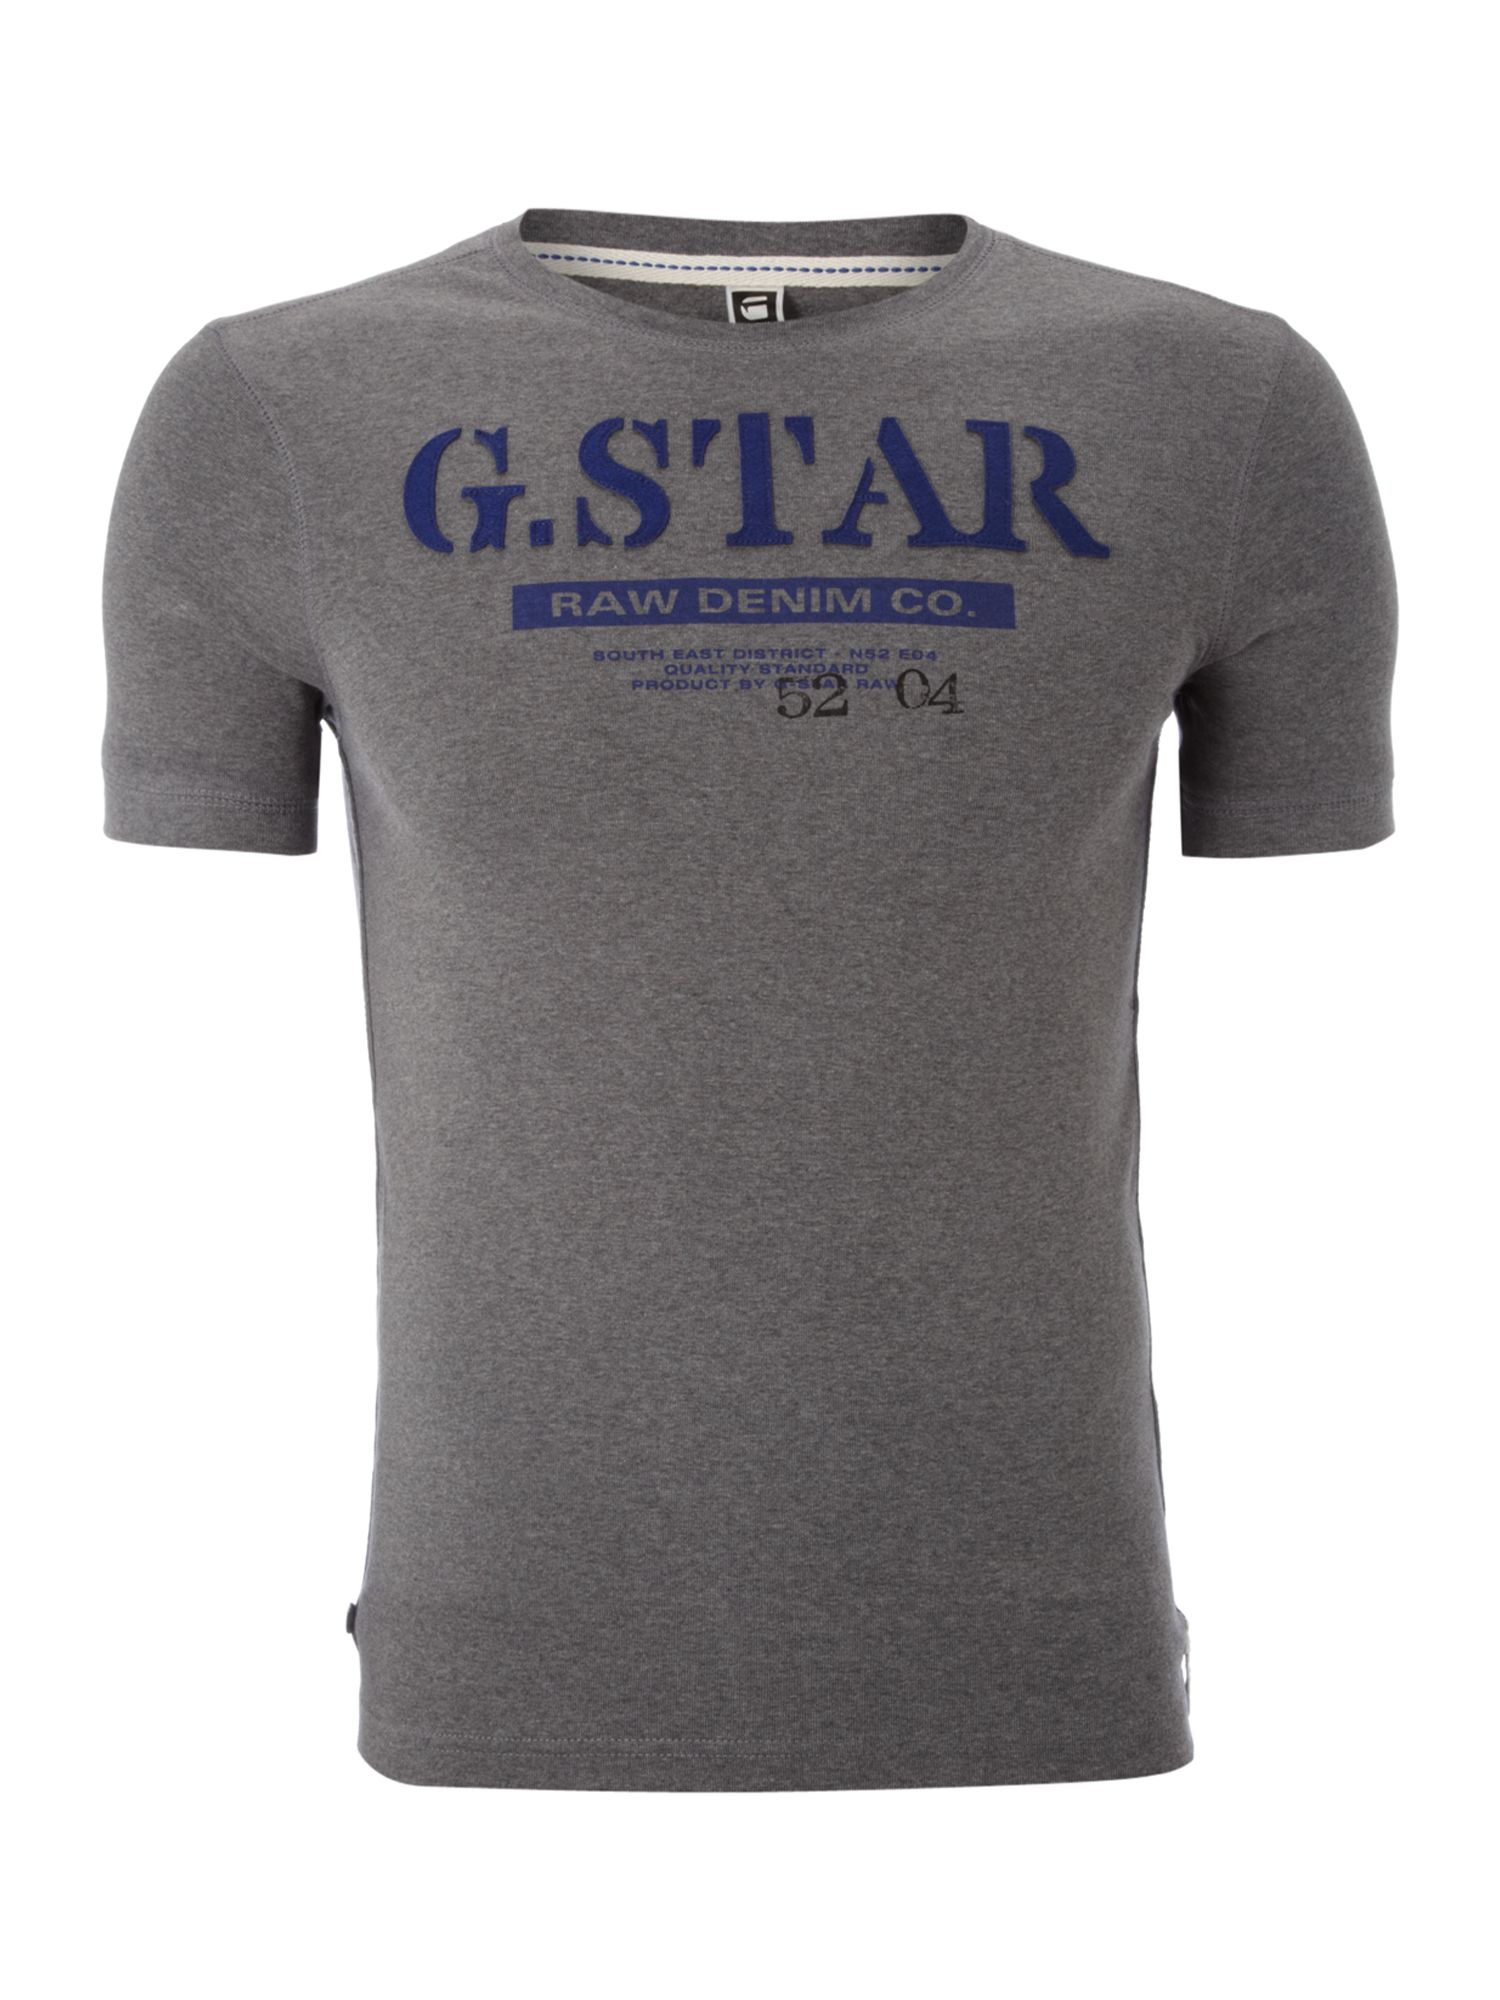 G-Star Mens G-Star Logo printed T-shirt, Grey product image